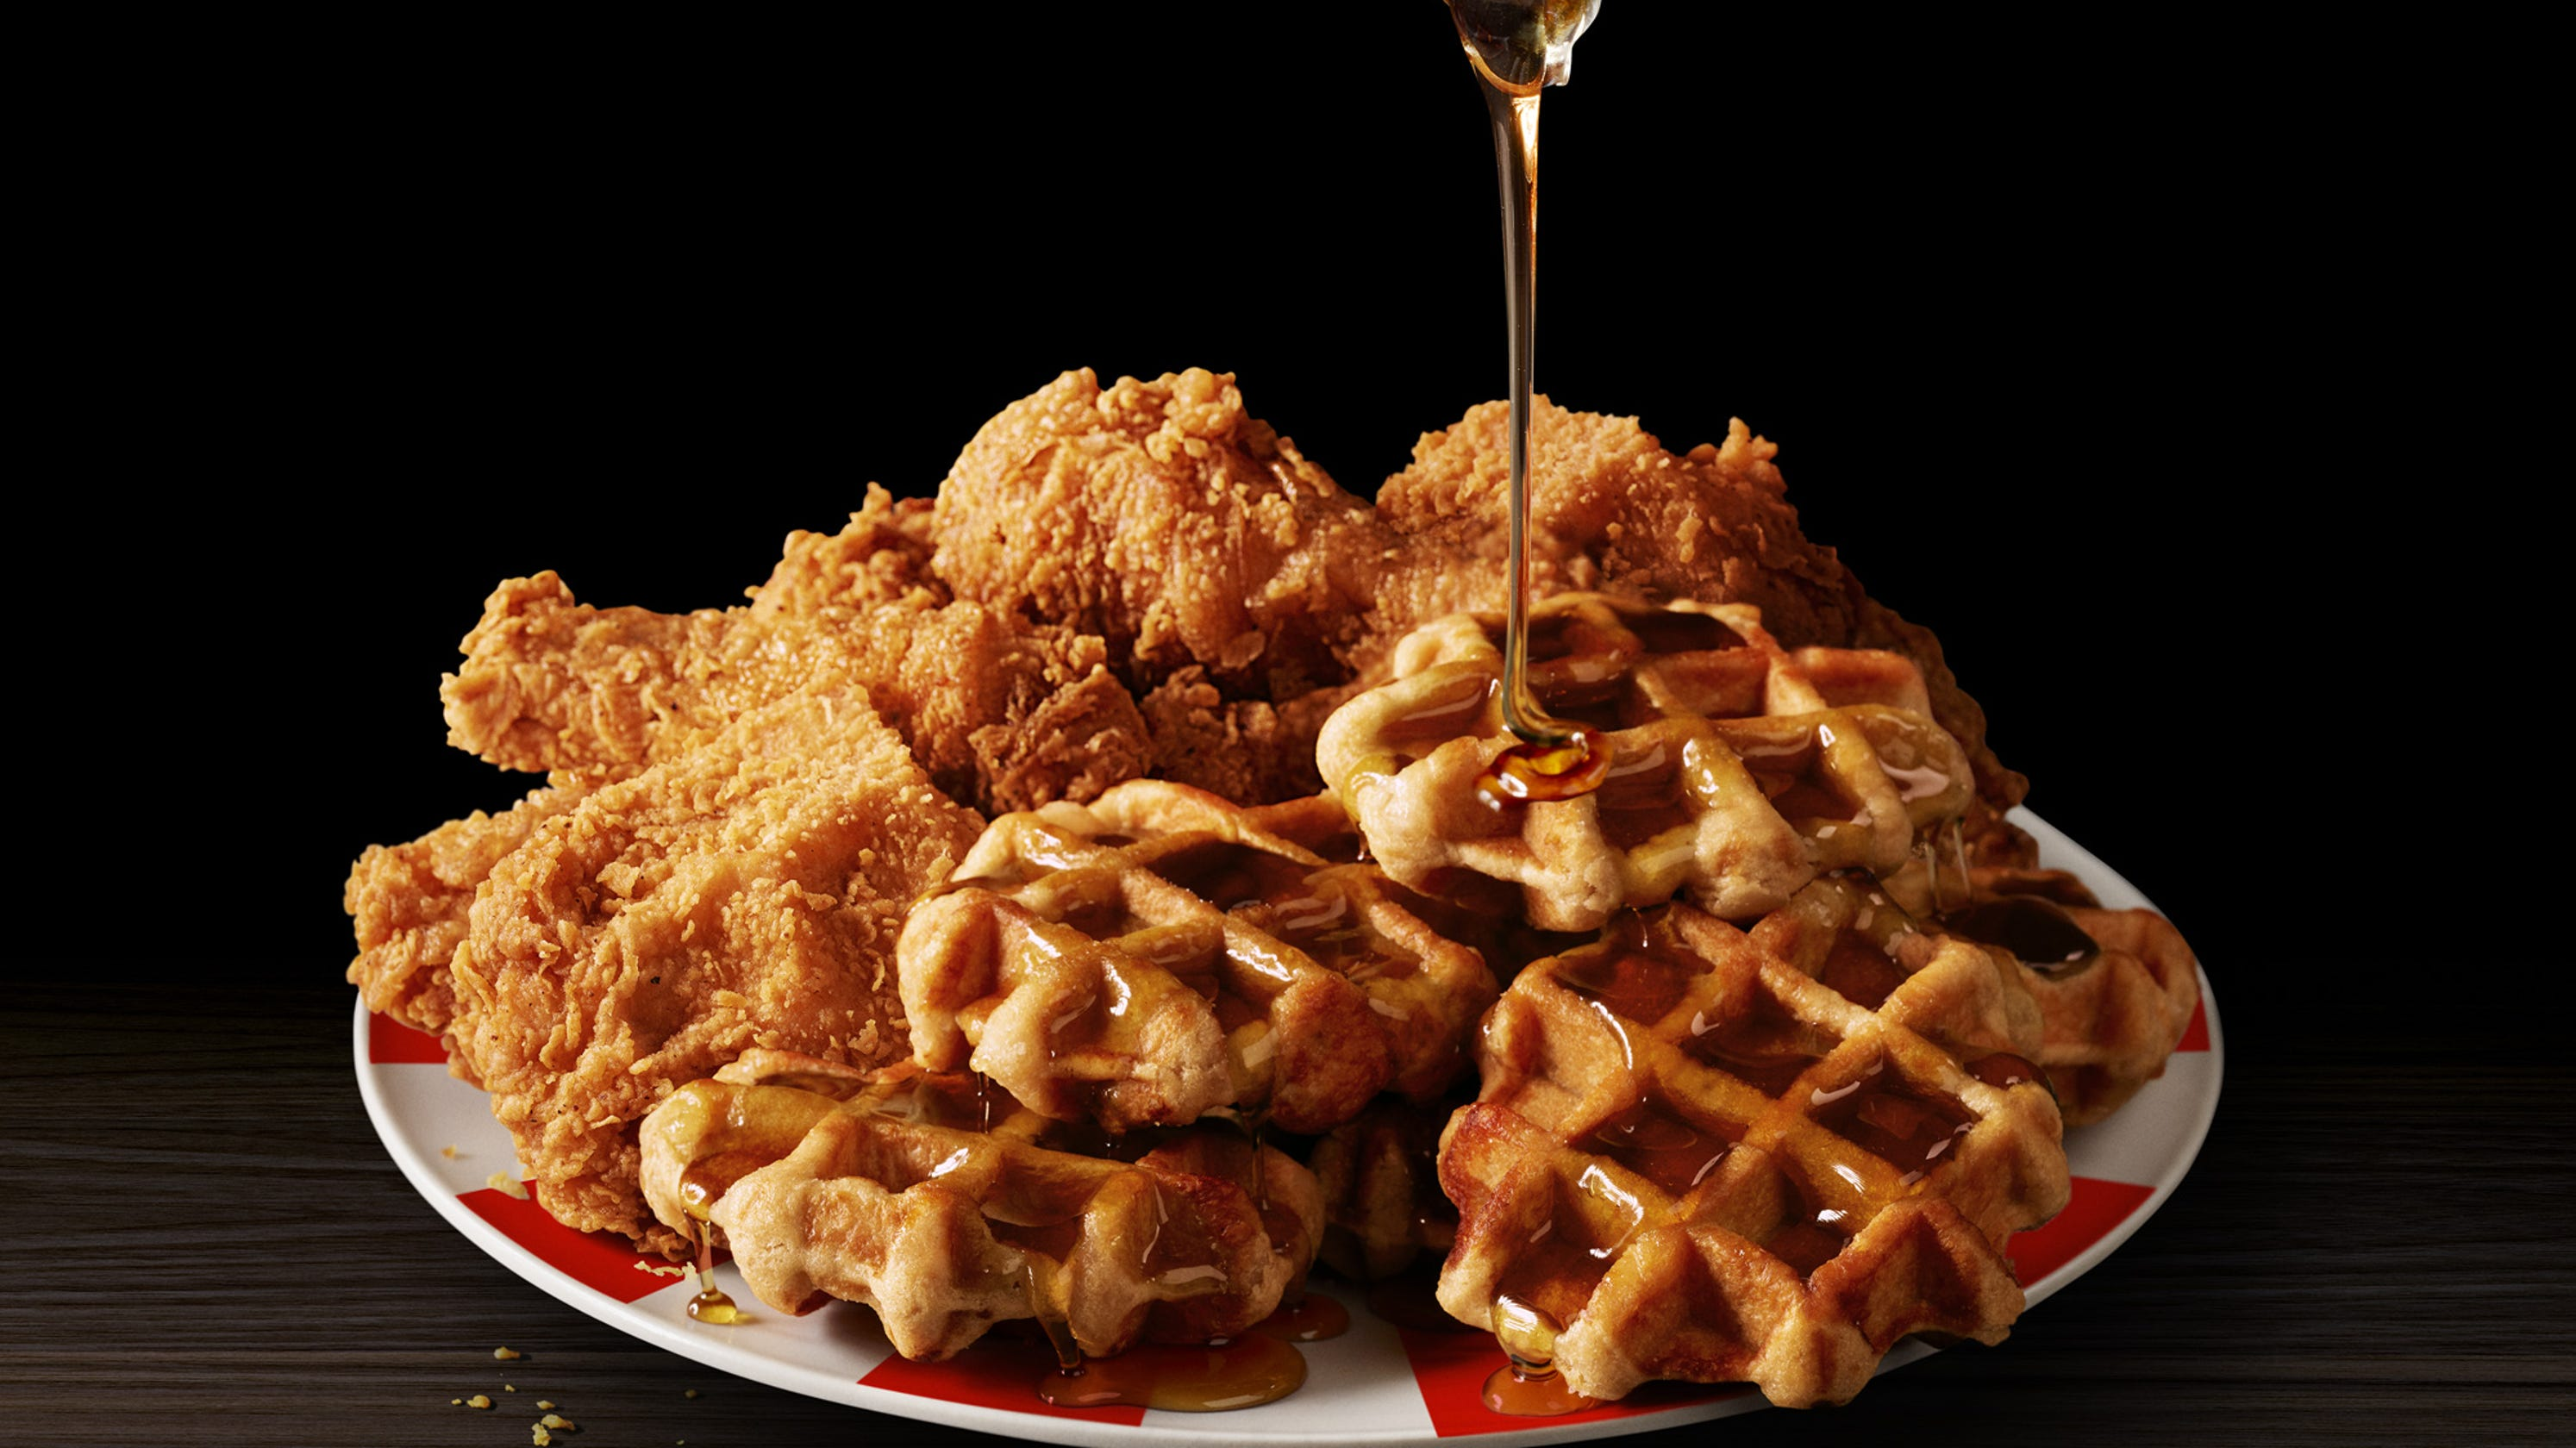 Kentucky Fried Chicken Quotes Quotesgram: KFC Bringing Back Kentucky Fried Chicken & Waffles For One